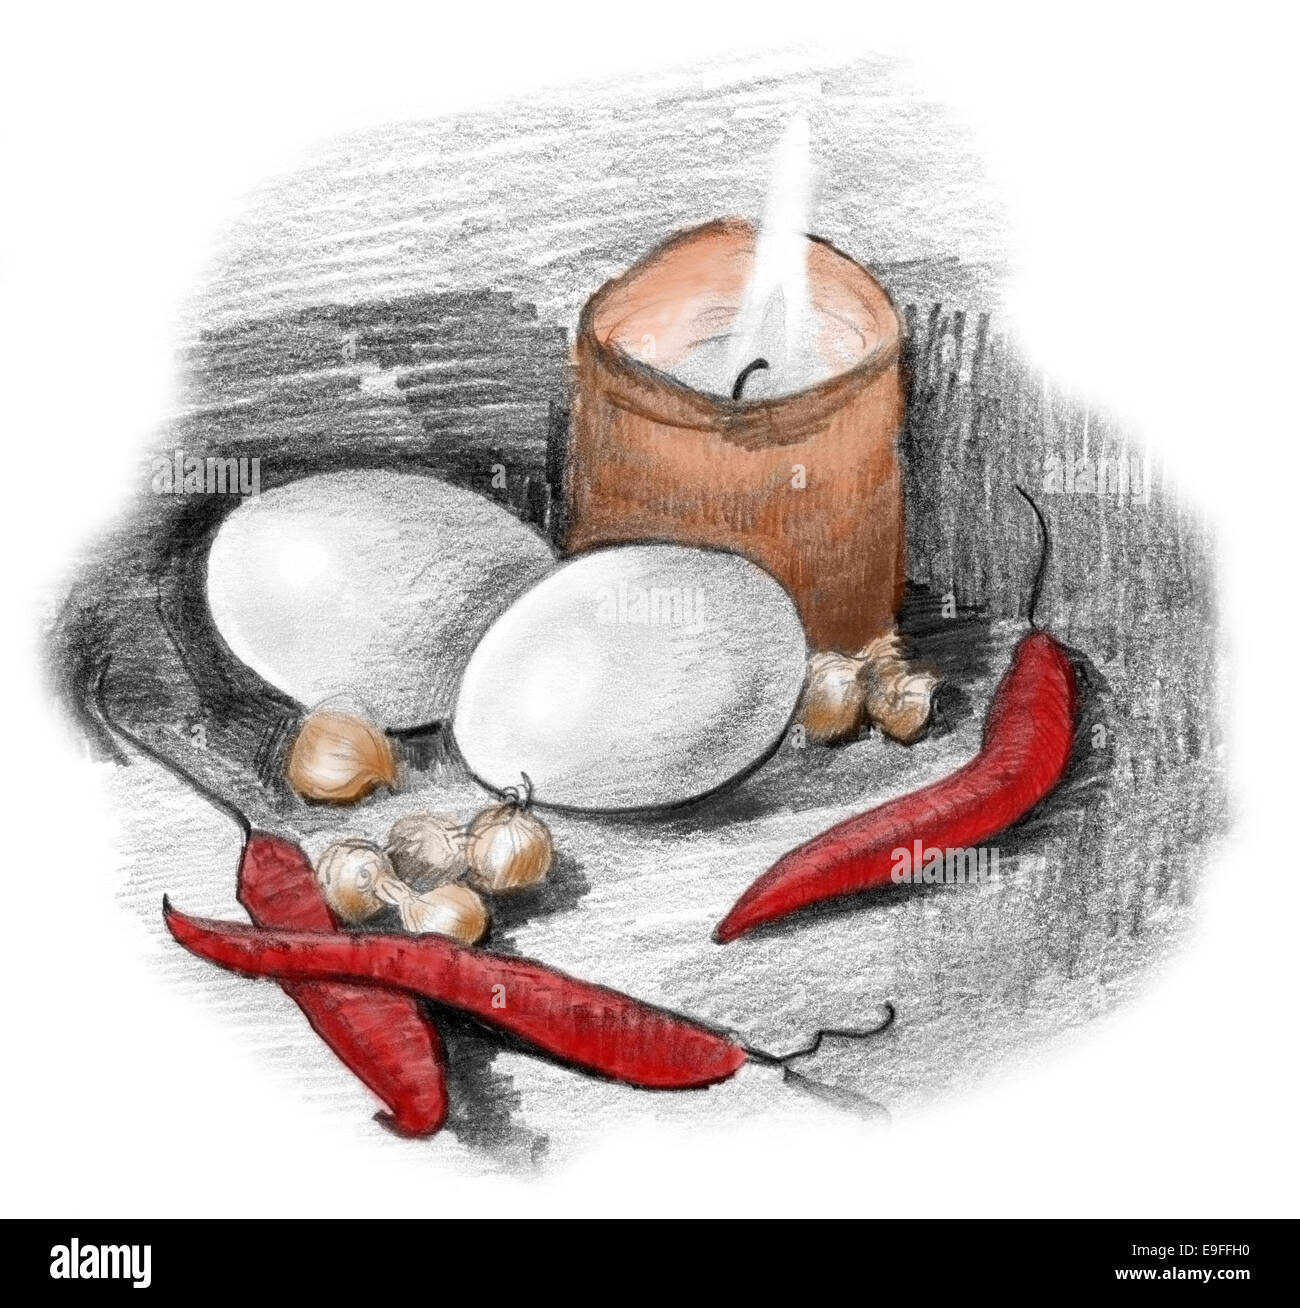 Eggs, peppers, crocus bulbs and candle light still life. Pencil sketch drawing in black and white partially colorized. Stock Photo